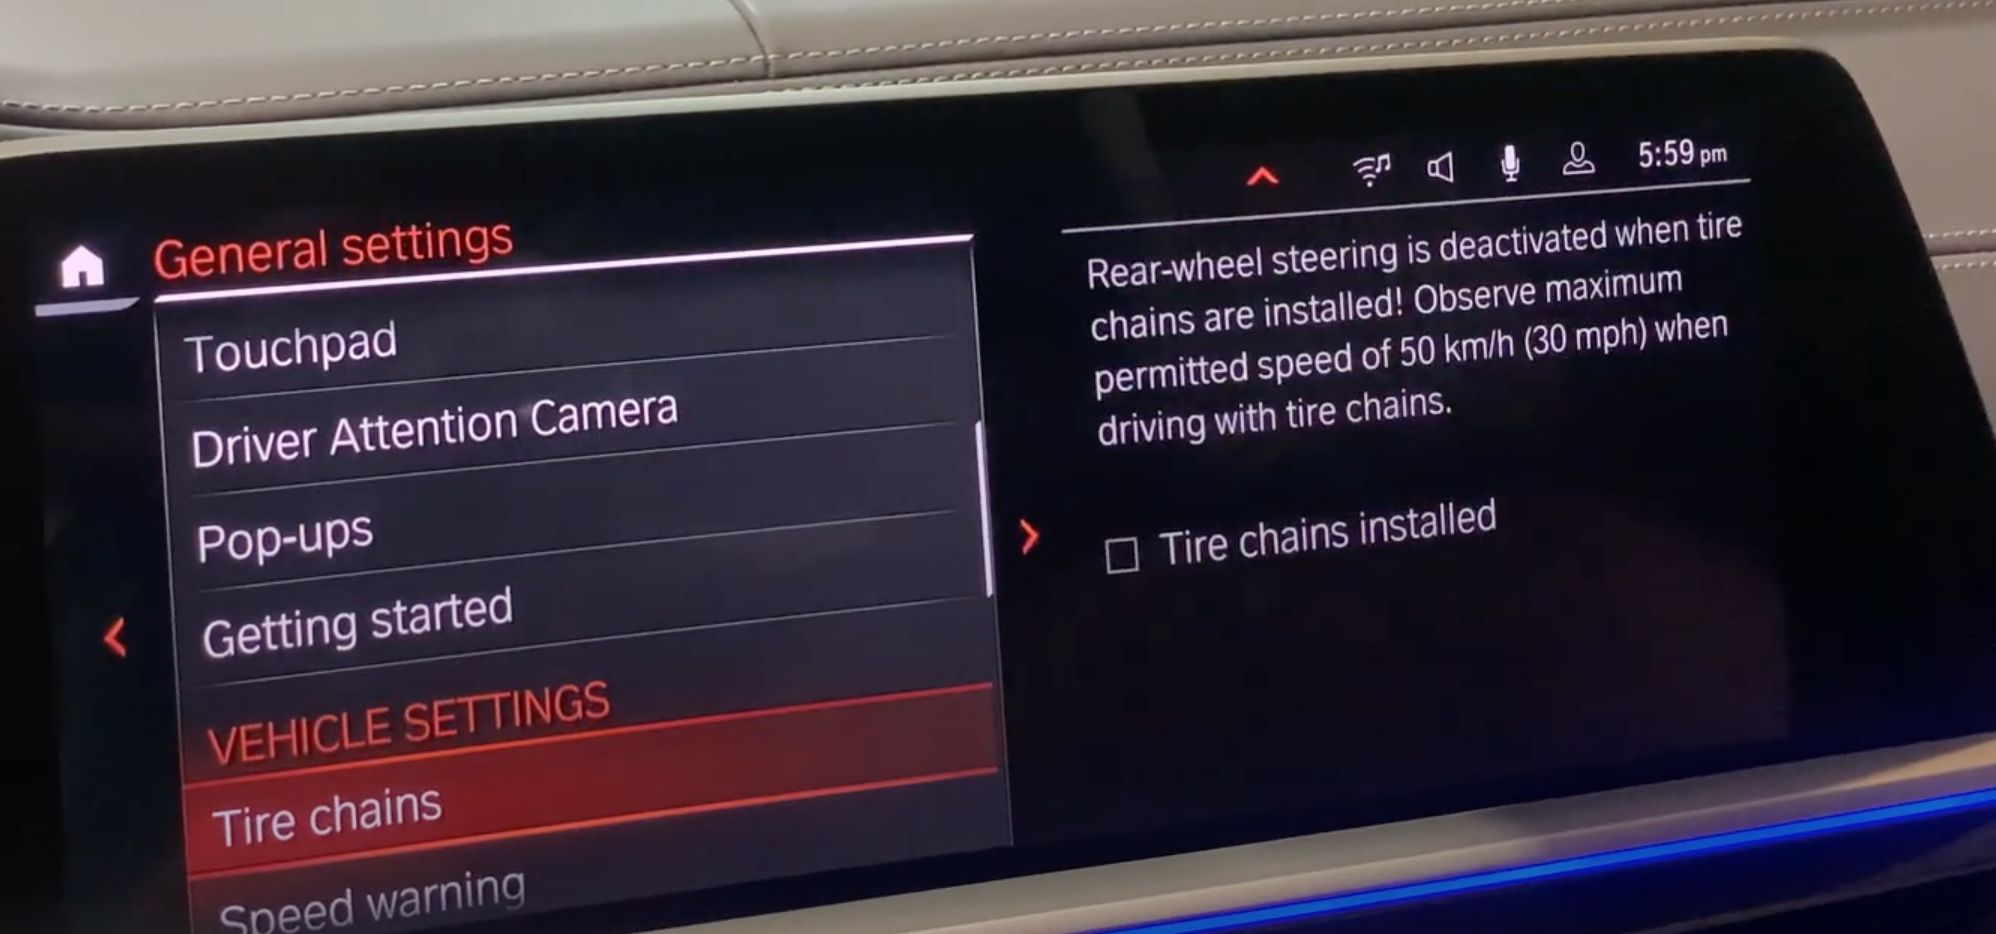 A list of various settings for the vehicle such as tire chains mode and speed warning